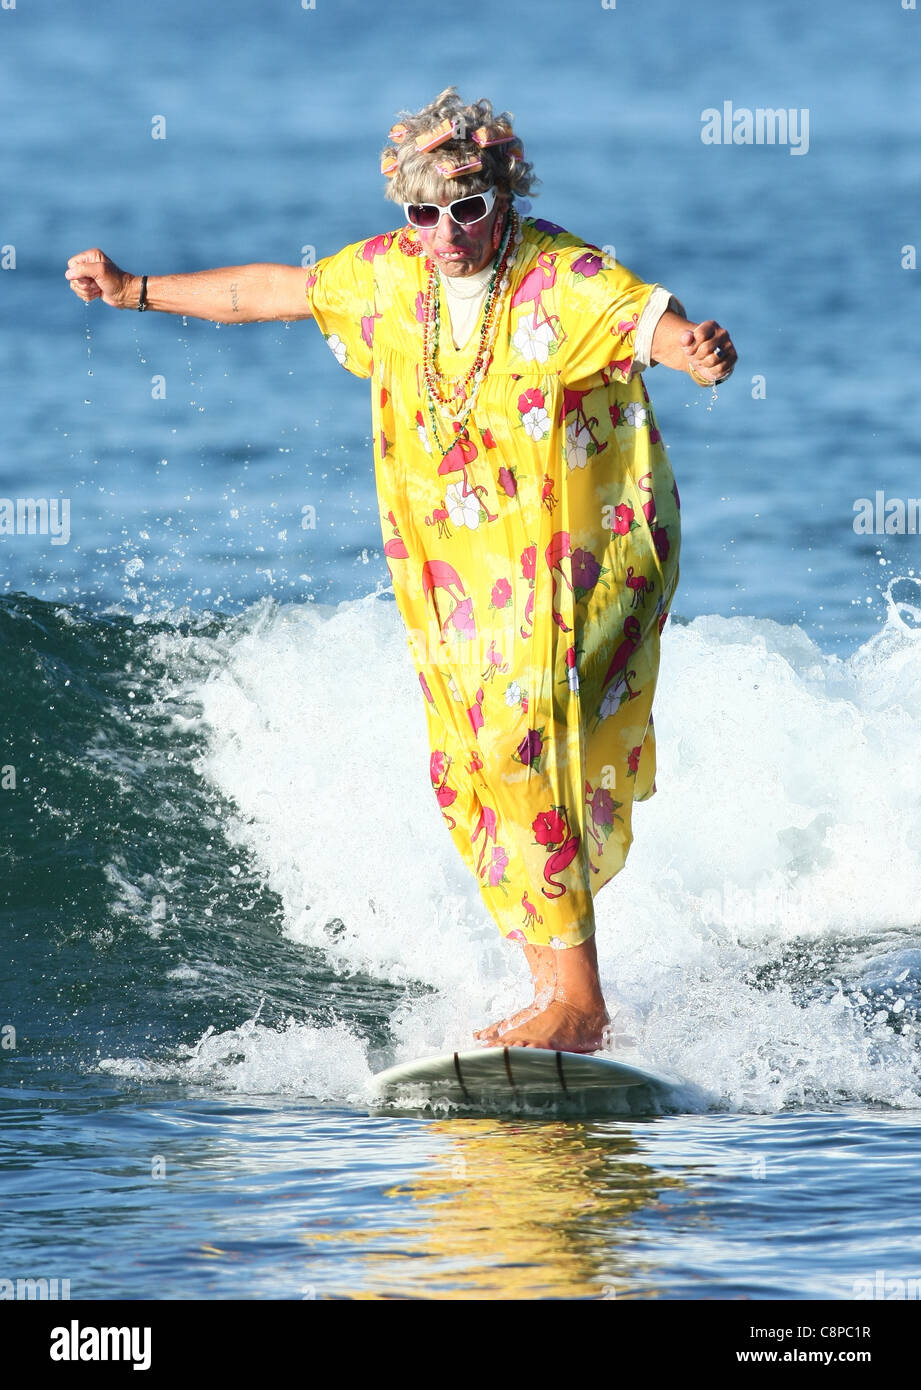 MALE SURFER AS OLD LADY BLACKIE'S HALLOWEEN COSTUME SURF